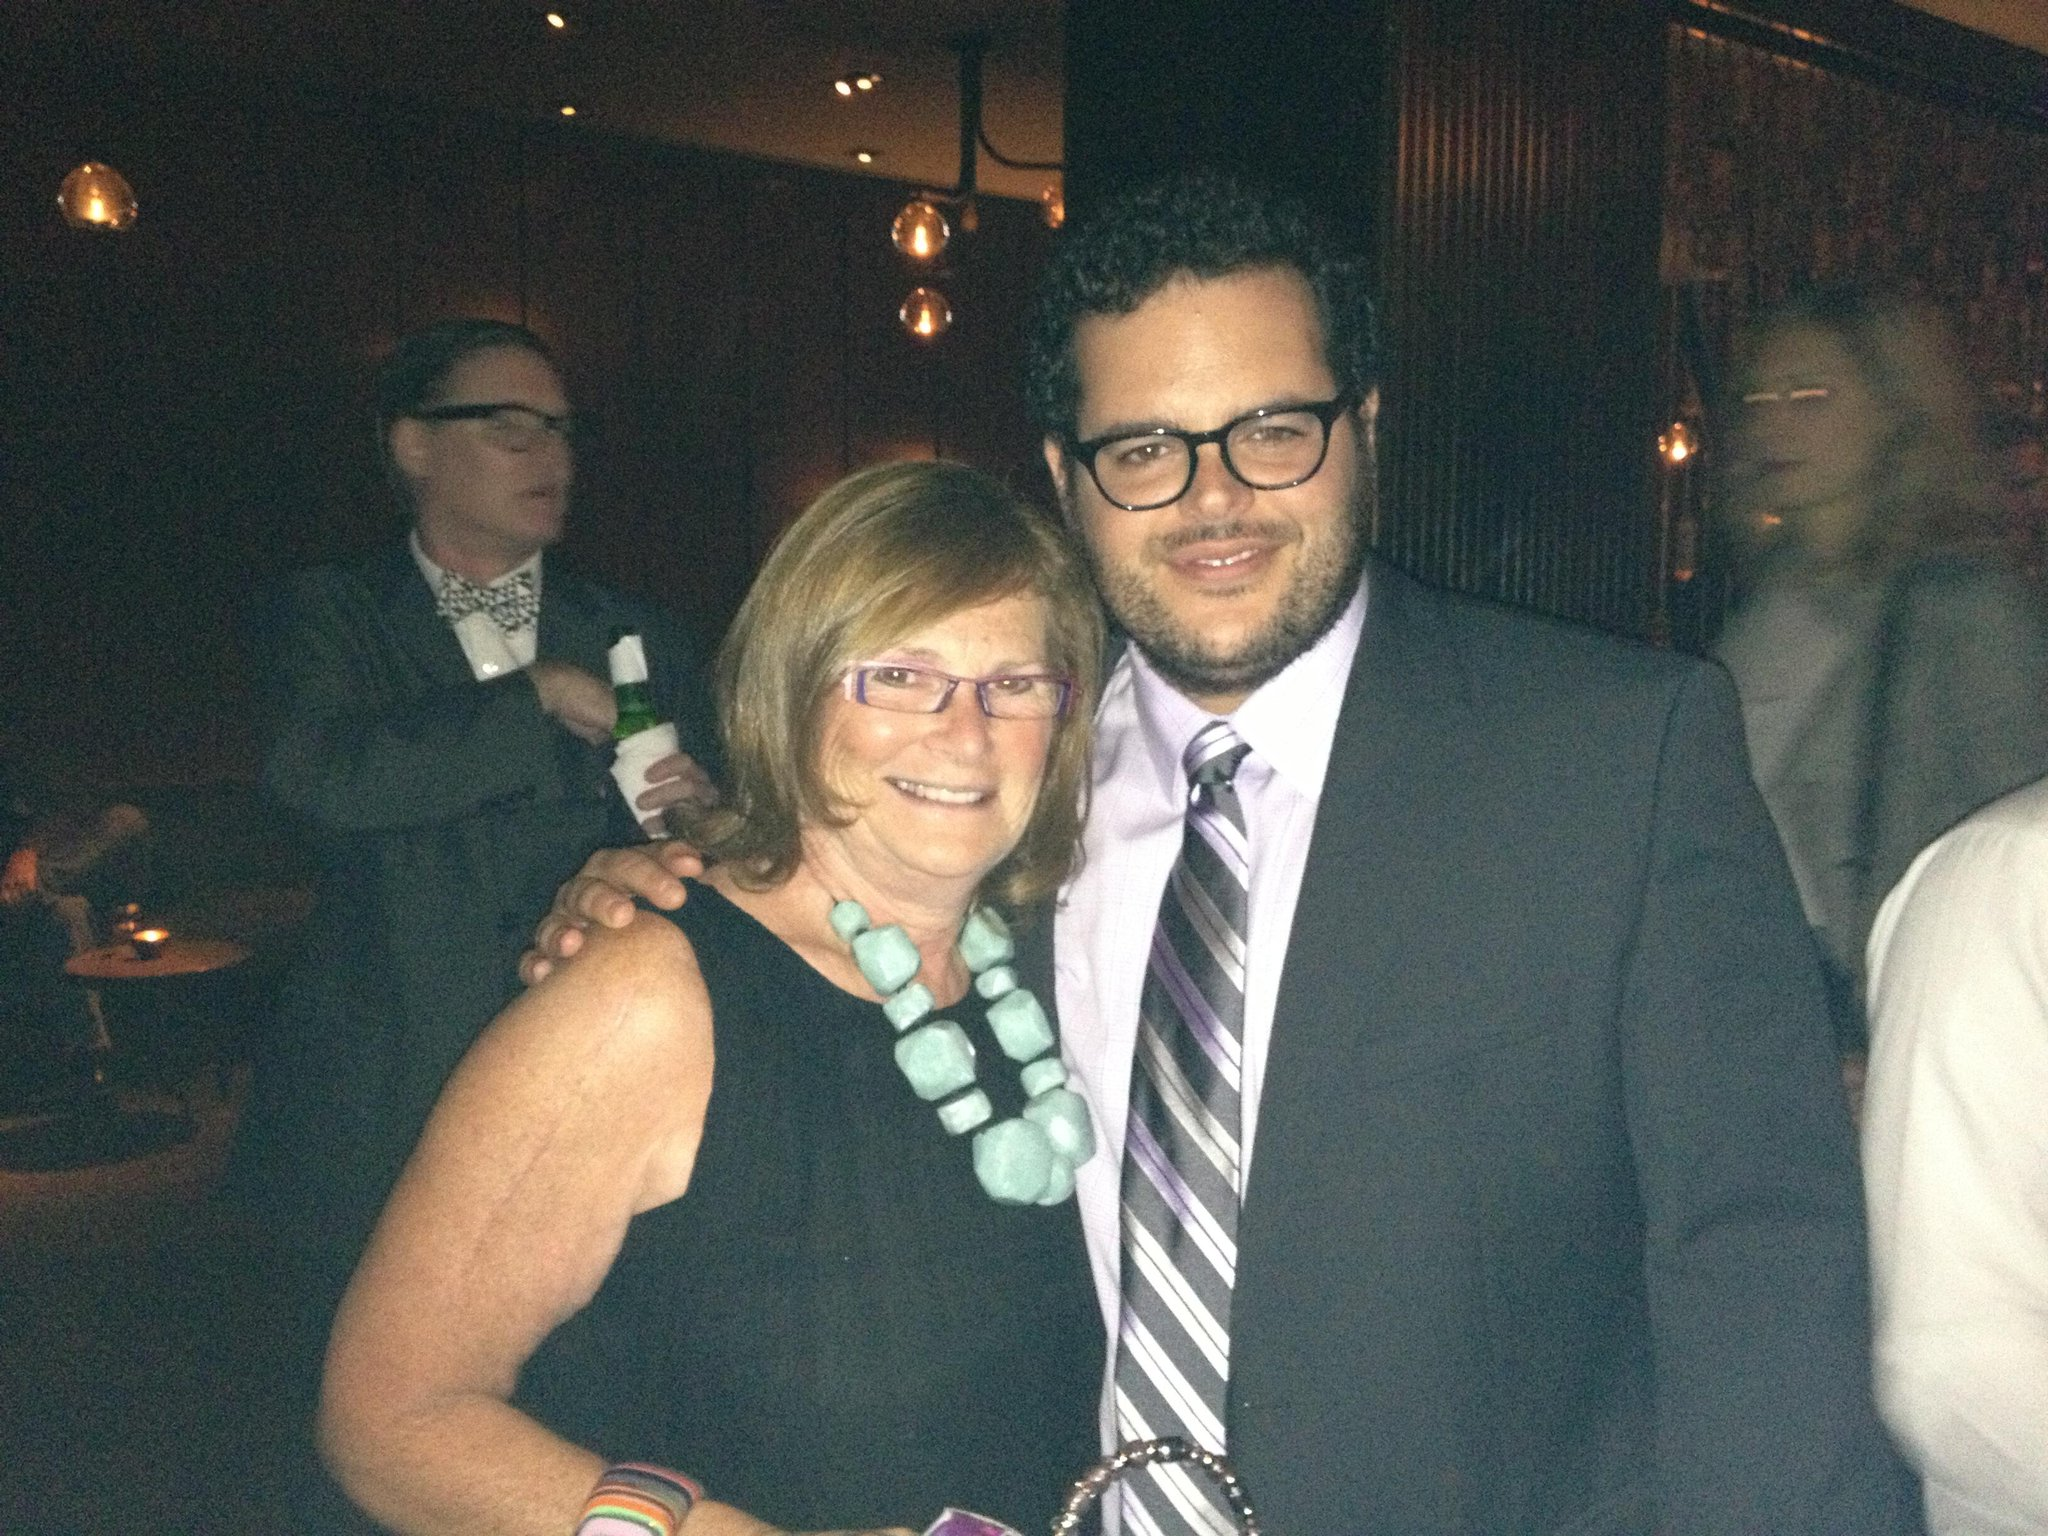 Myla Lerner josh gad at the Opening of Jobs http://t.co/0UjUwv4DMw